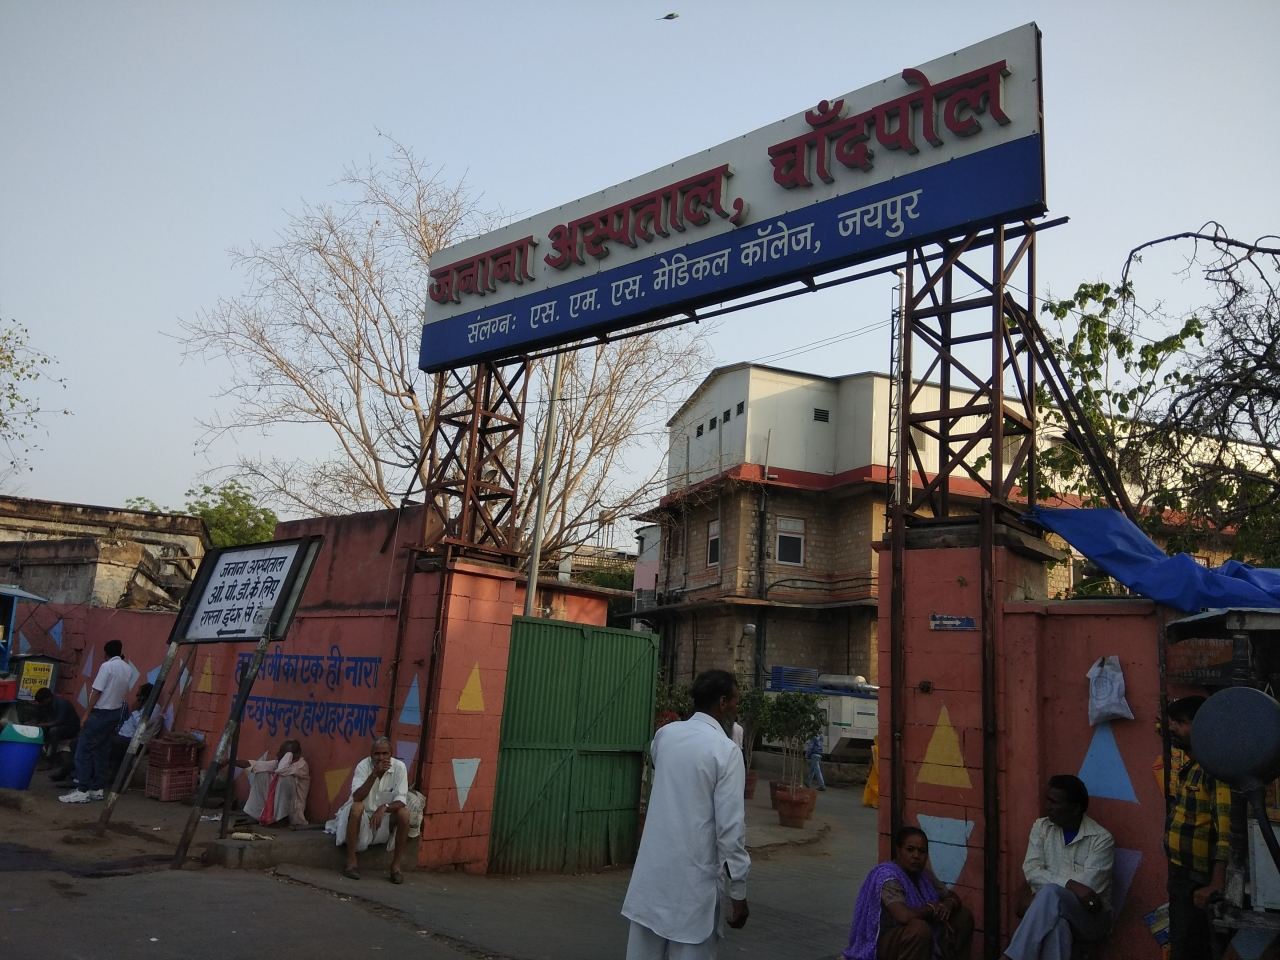 Patients from all over Rajasthan converge on Chandpole's Janana Hospital in Jaipur.